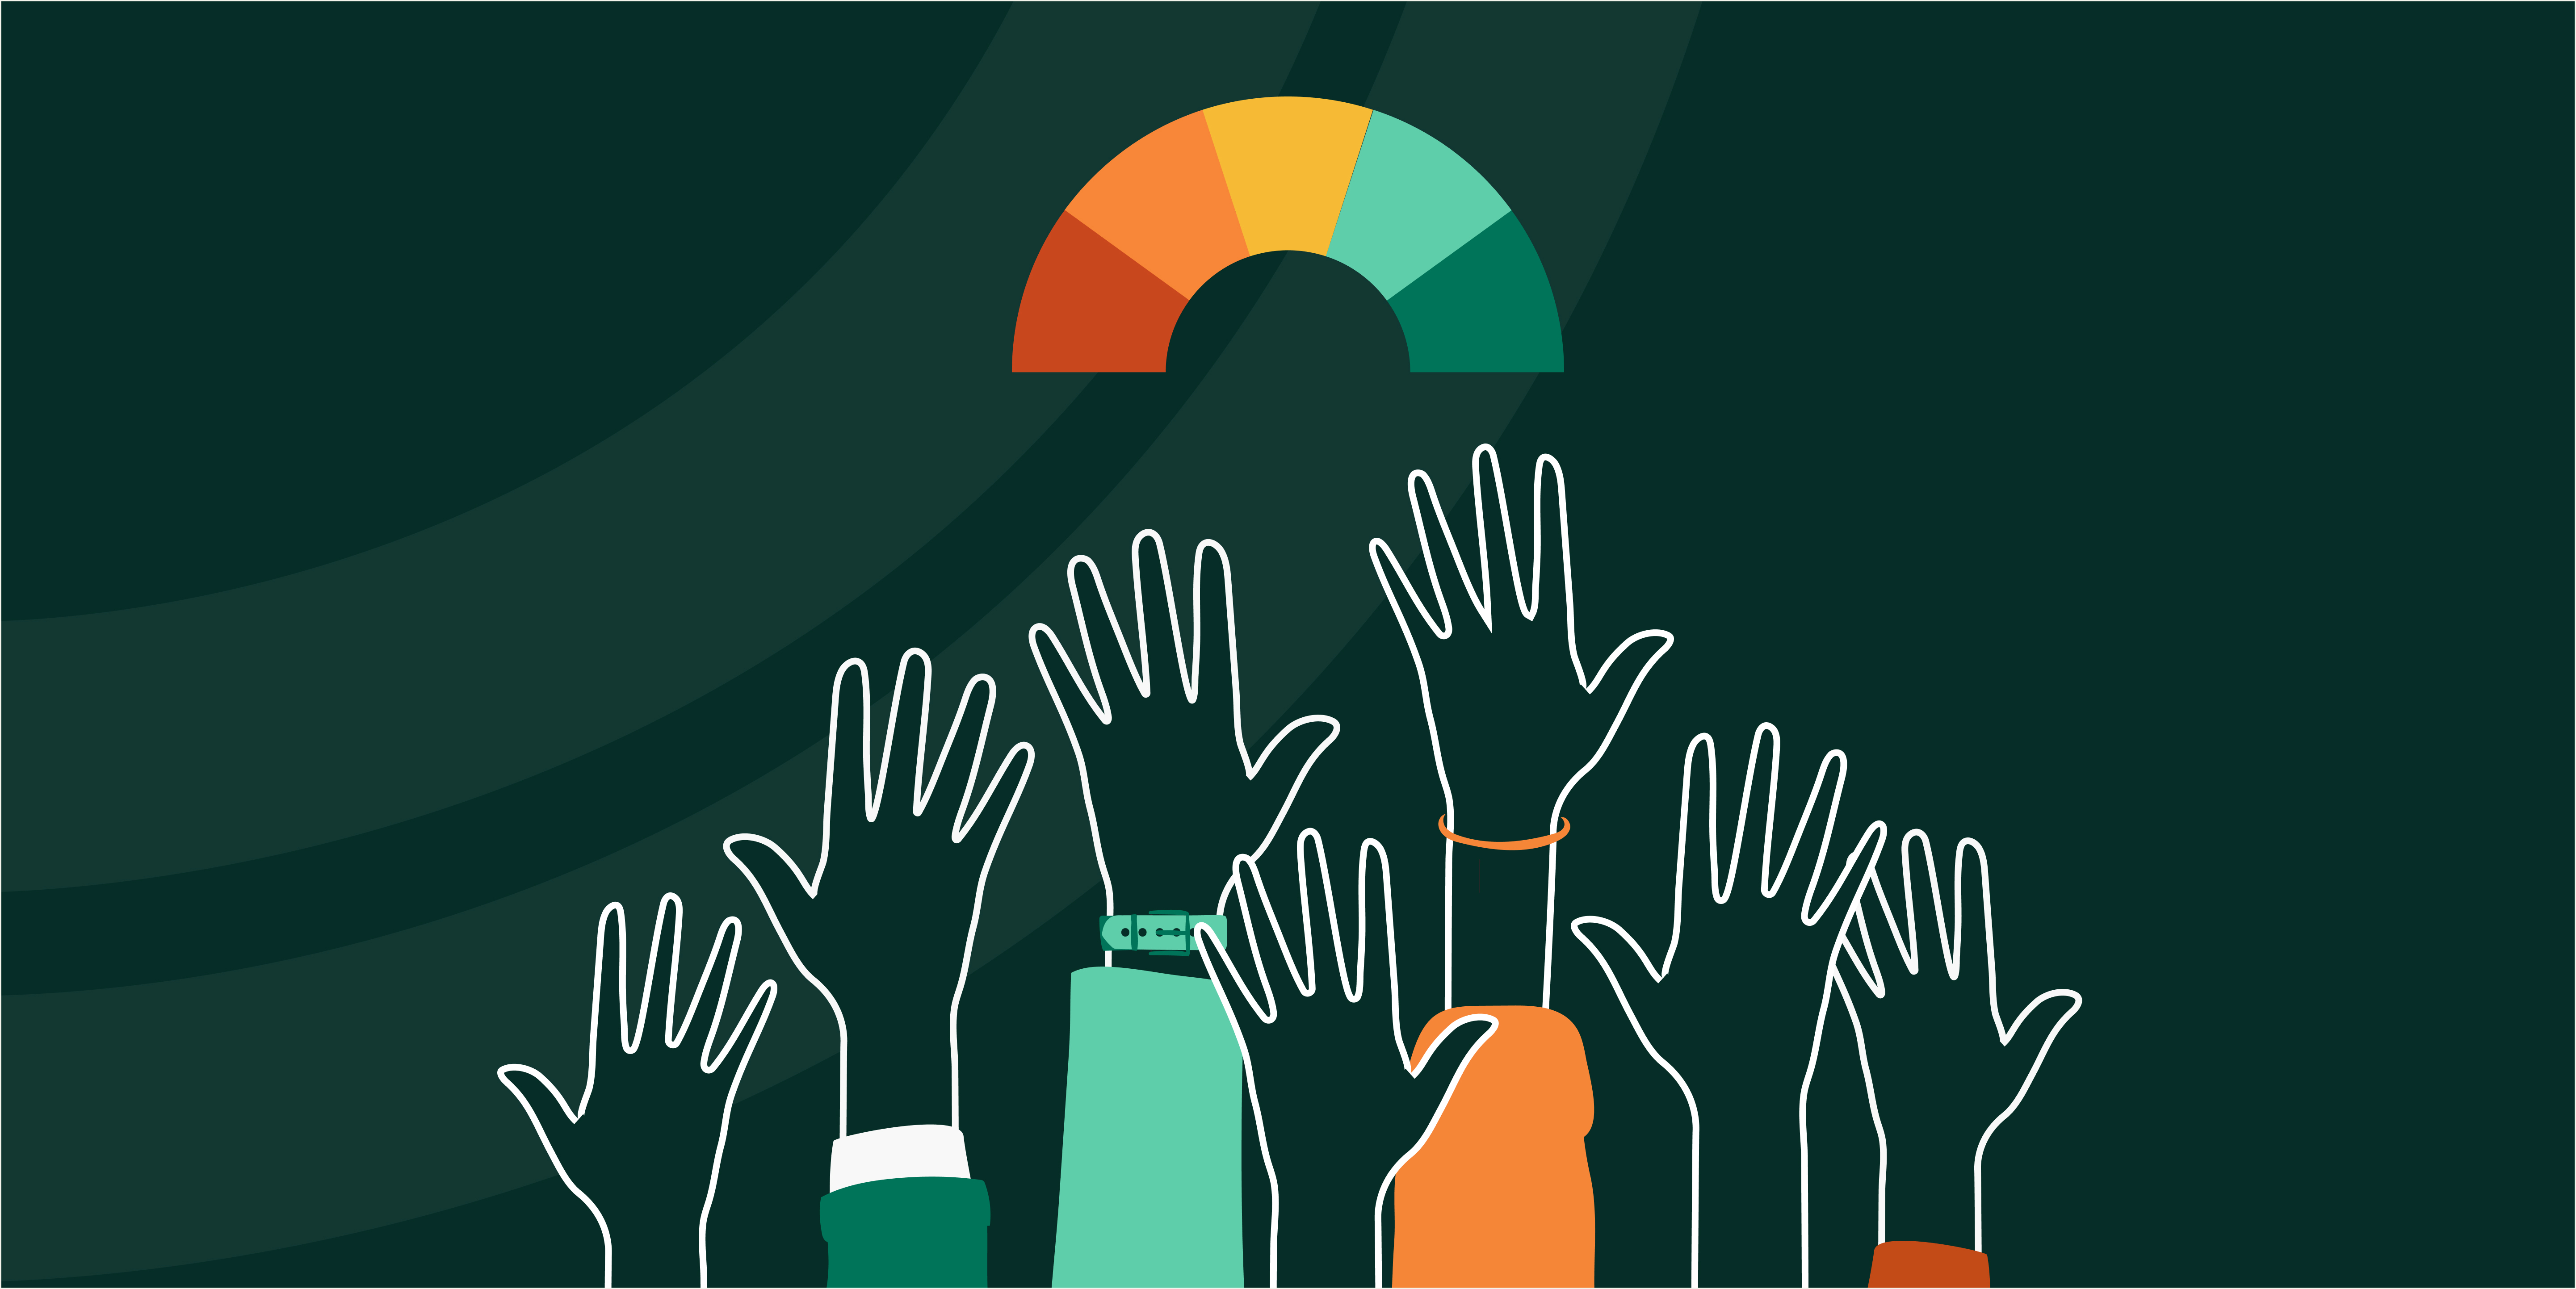 Decorative, illustration of many hands reaching up toward an arch-shaped graph   By Kyle Duong